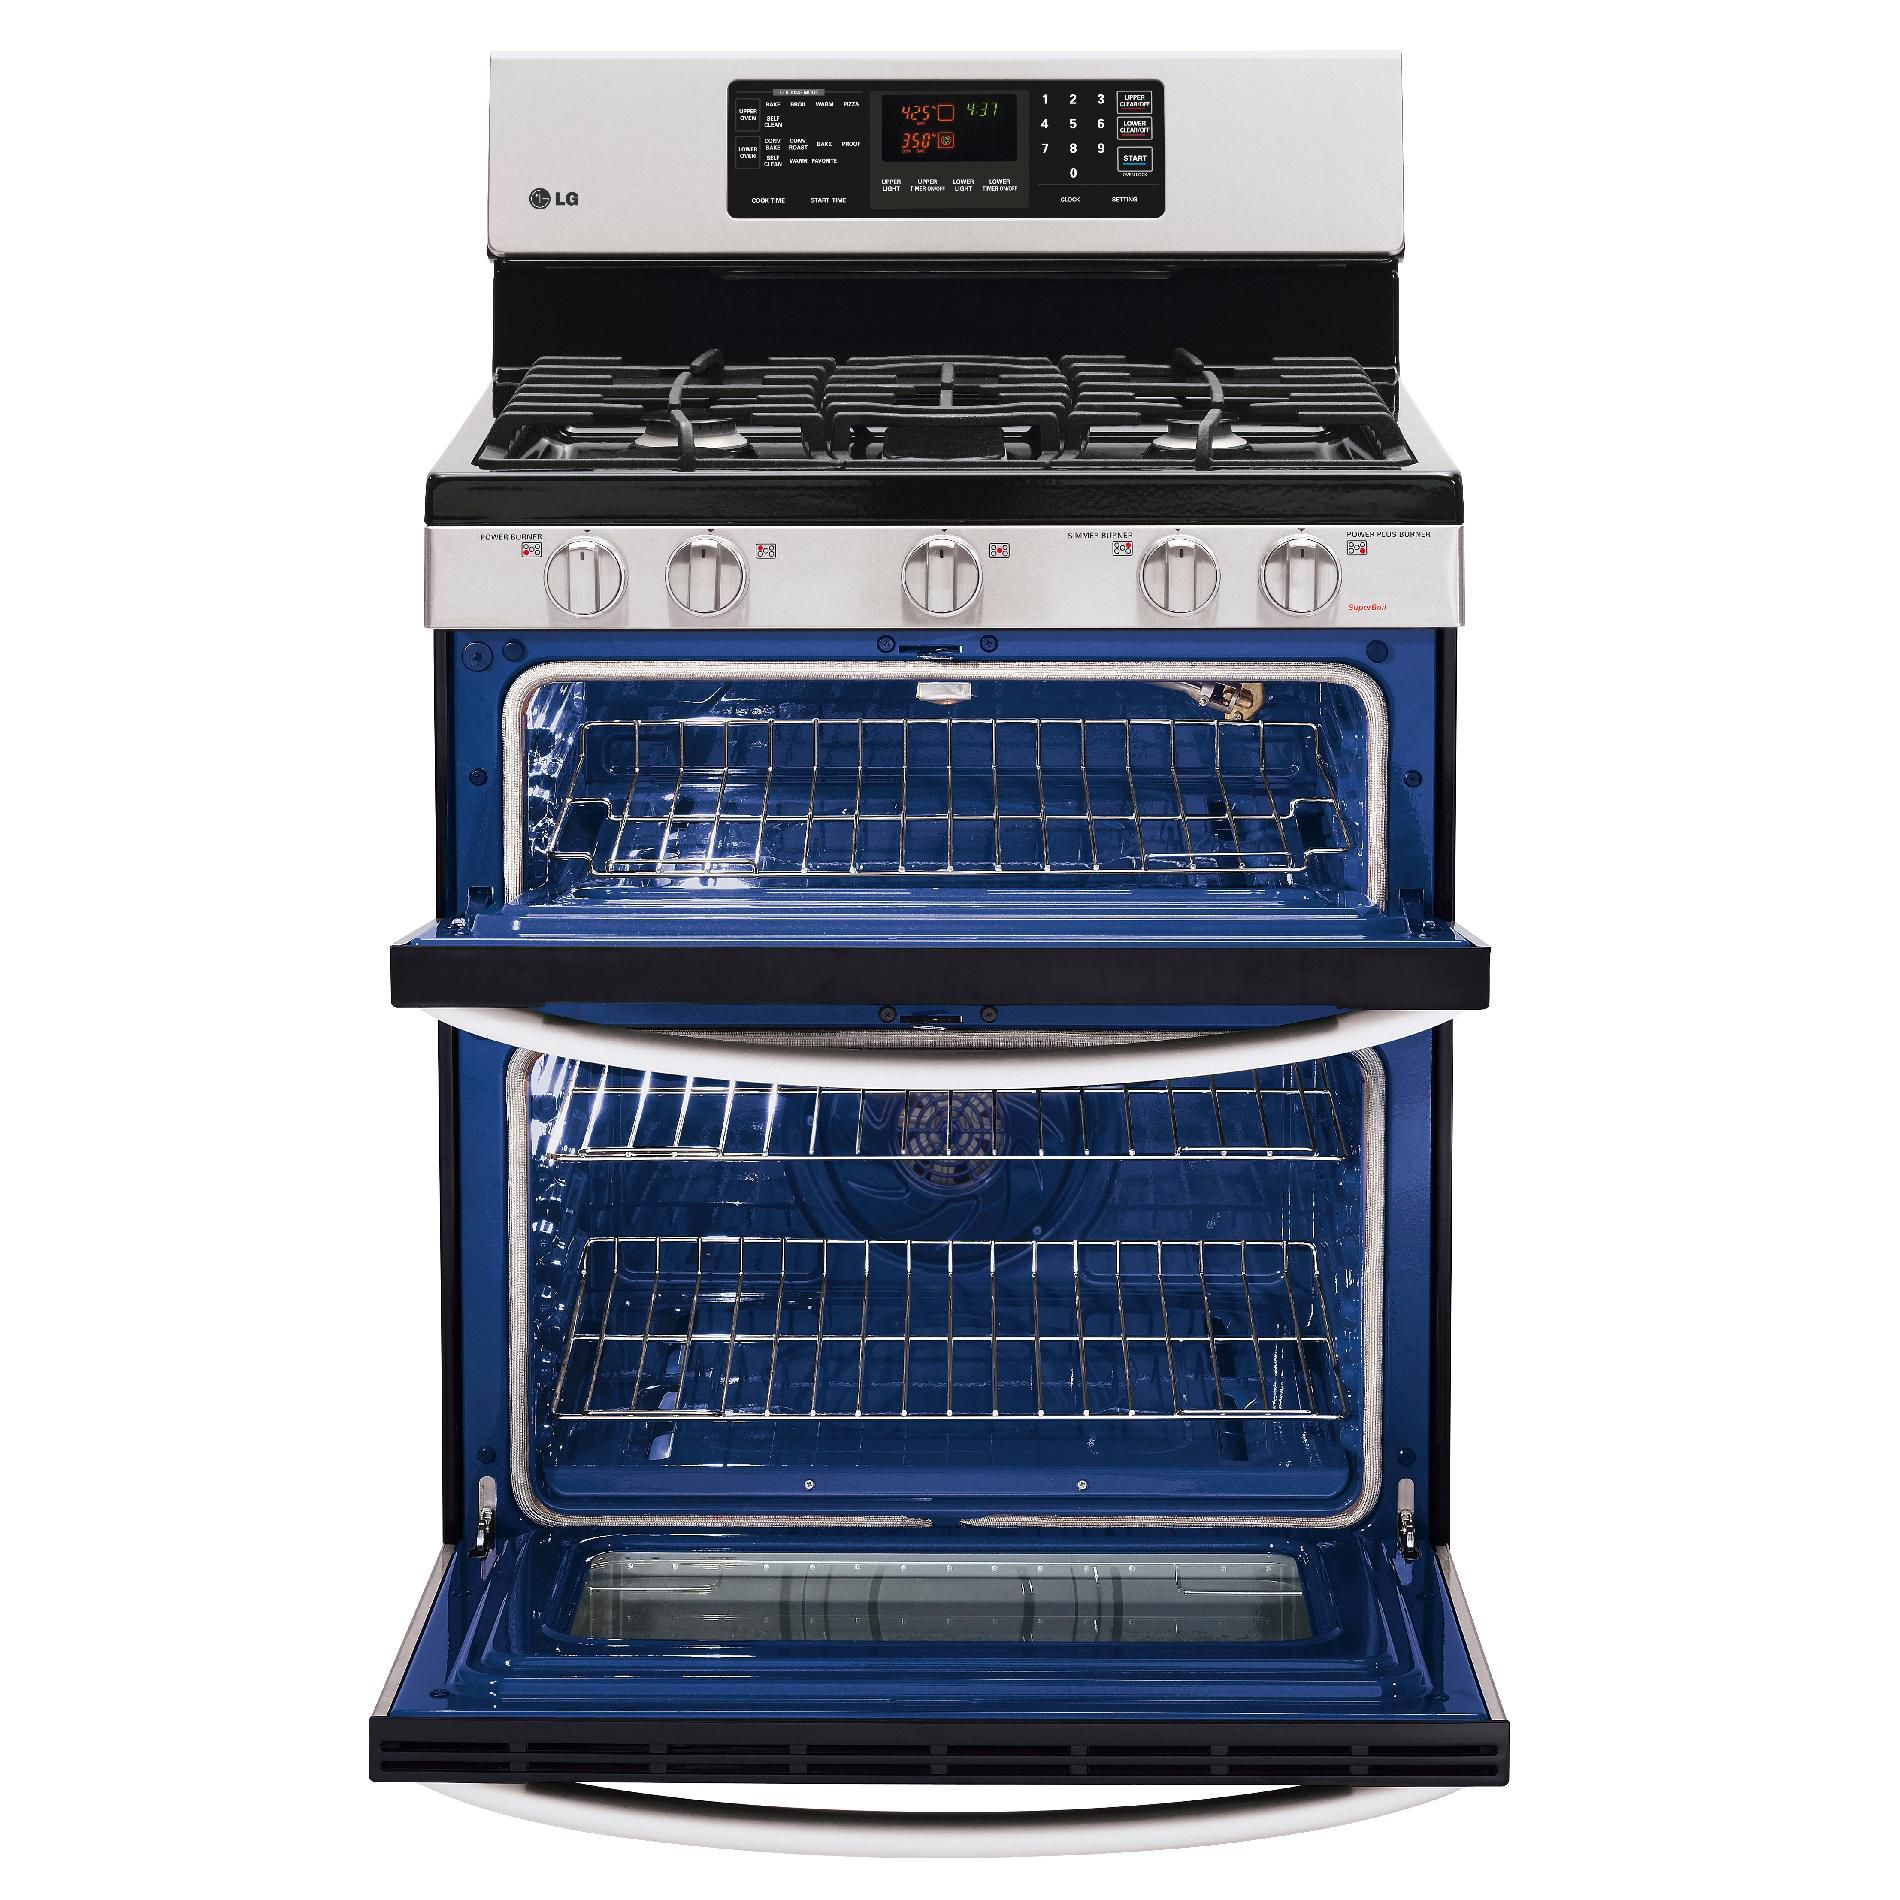 LG 10 cu. ft. Double-Oven Gas Range w/ Convection - Stainless Steel